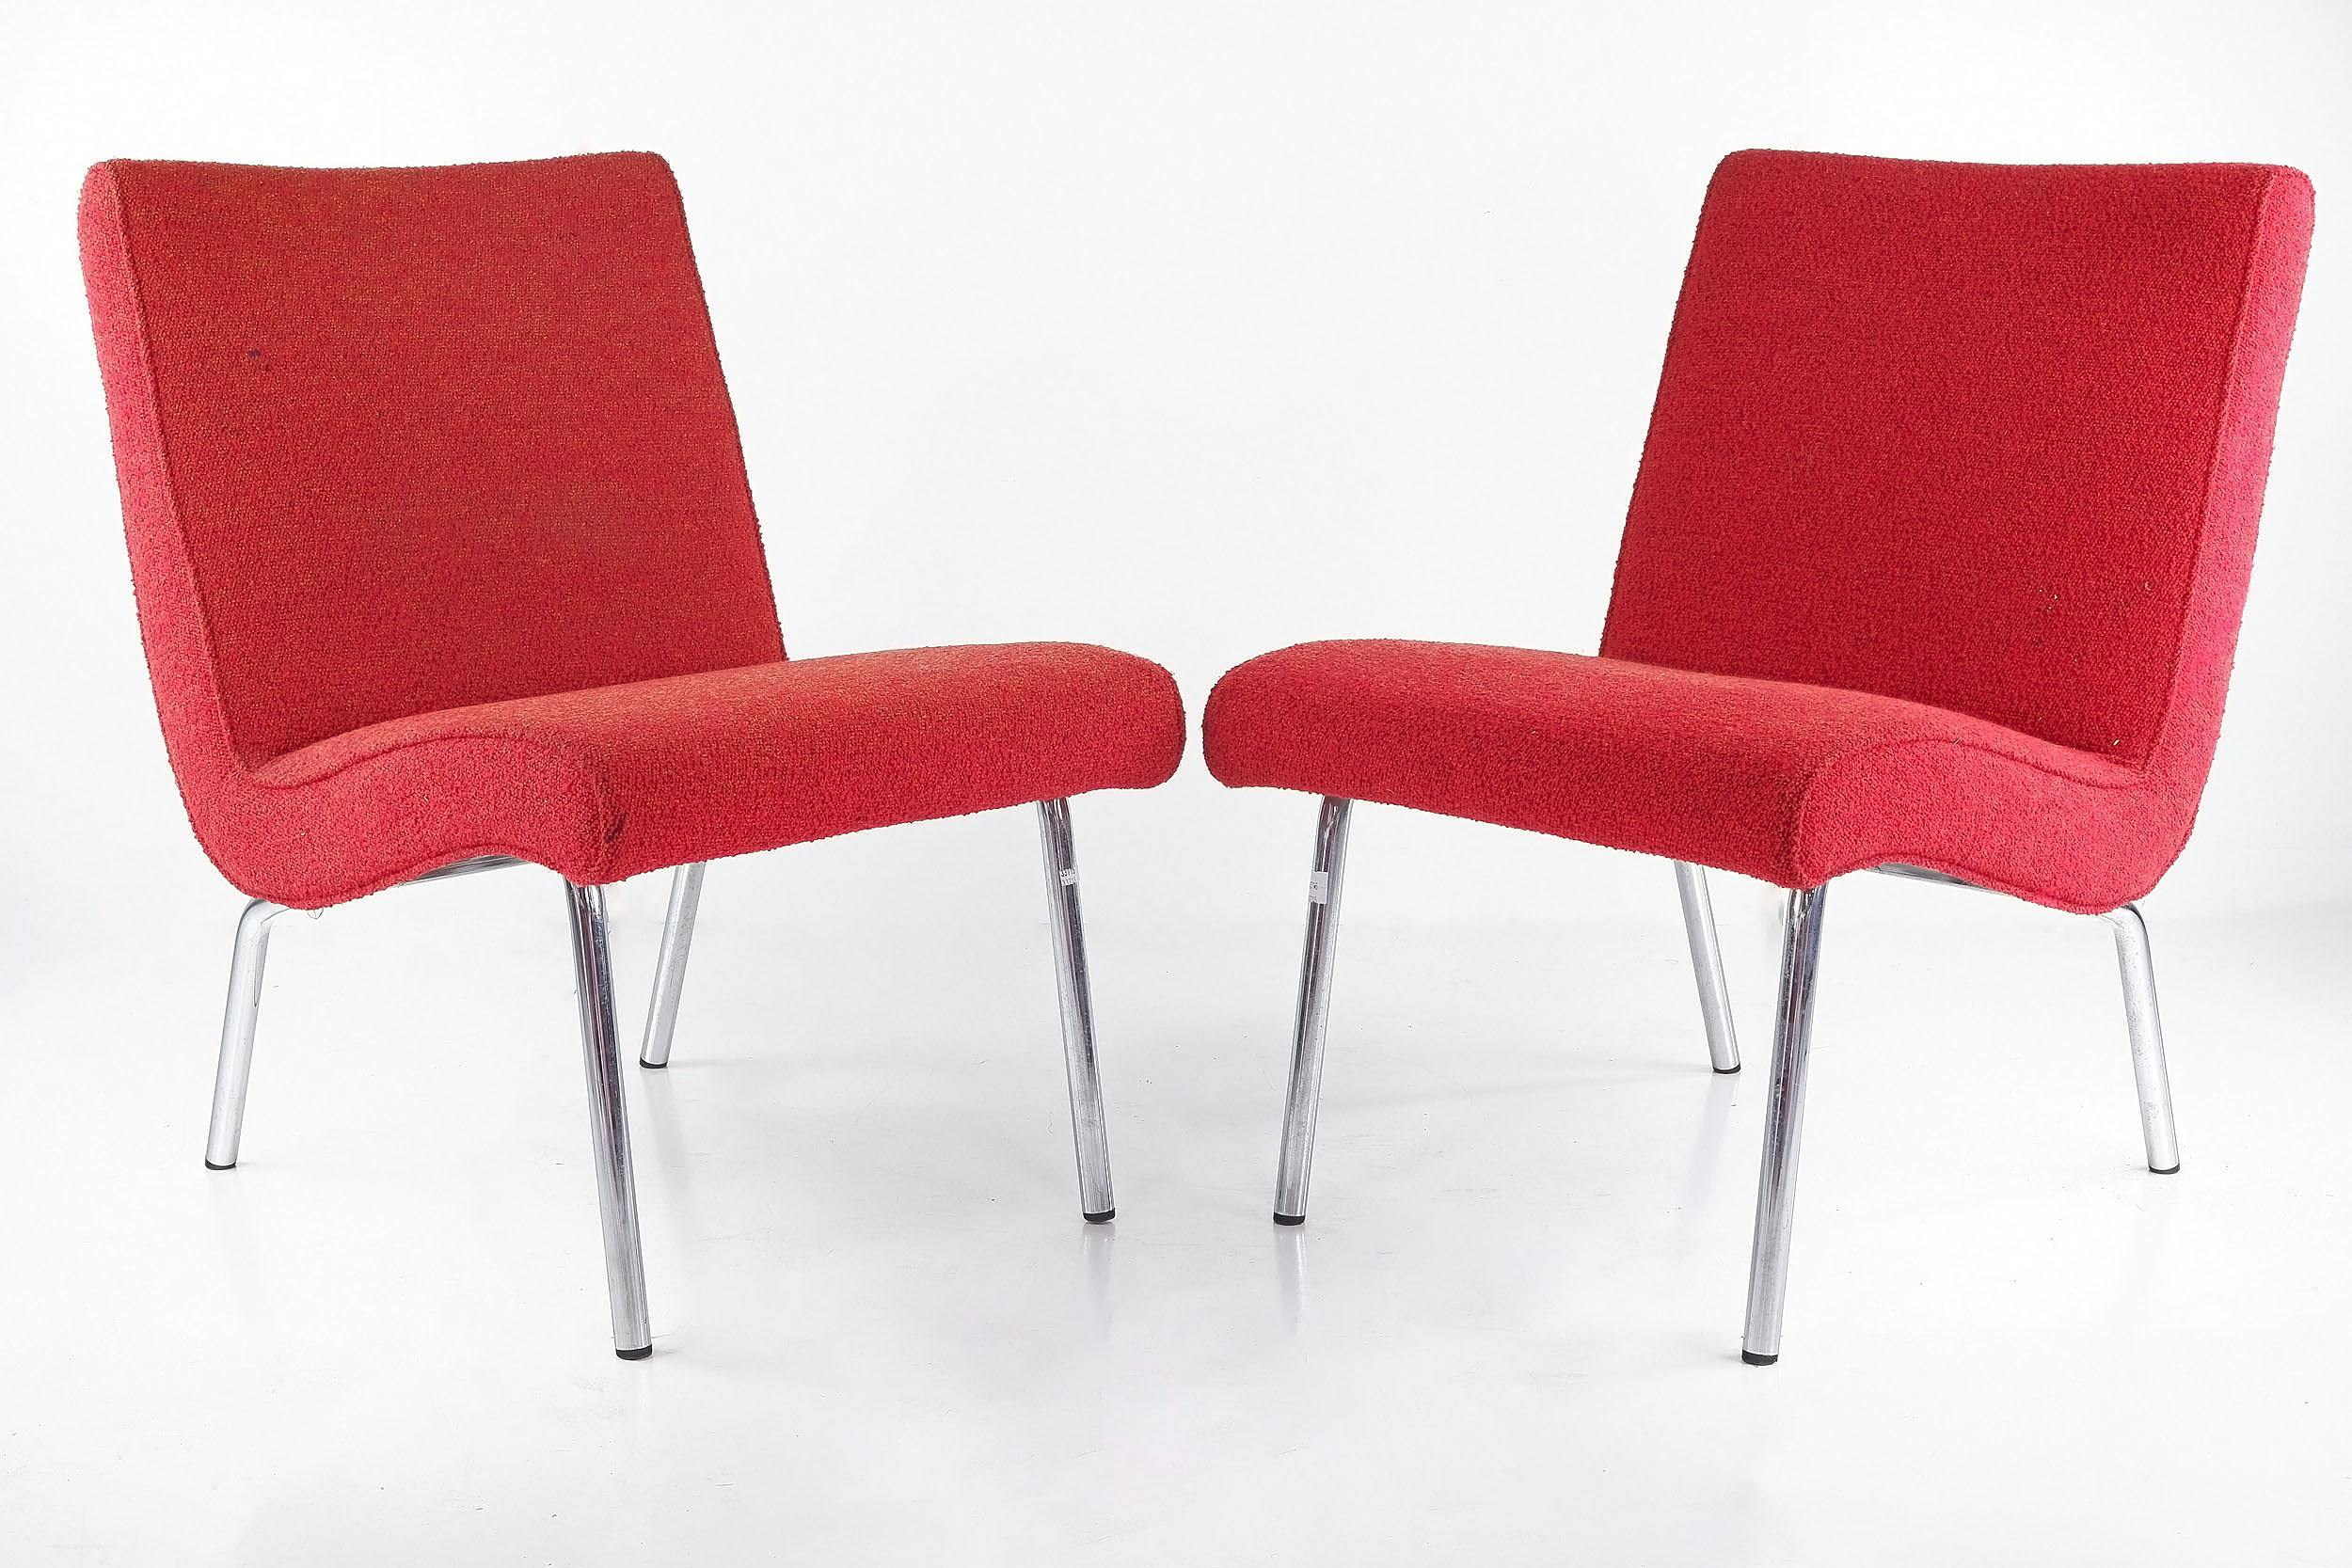 'Pair of Walter Knoll Chairs'